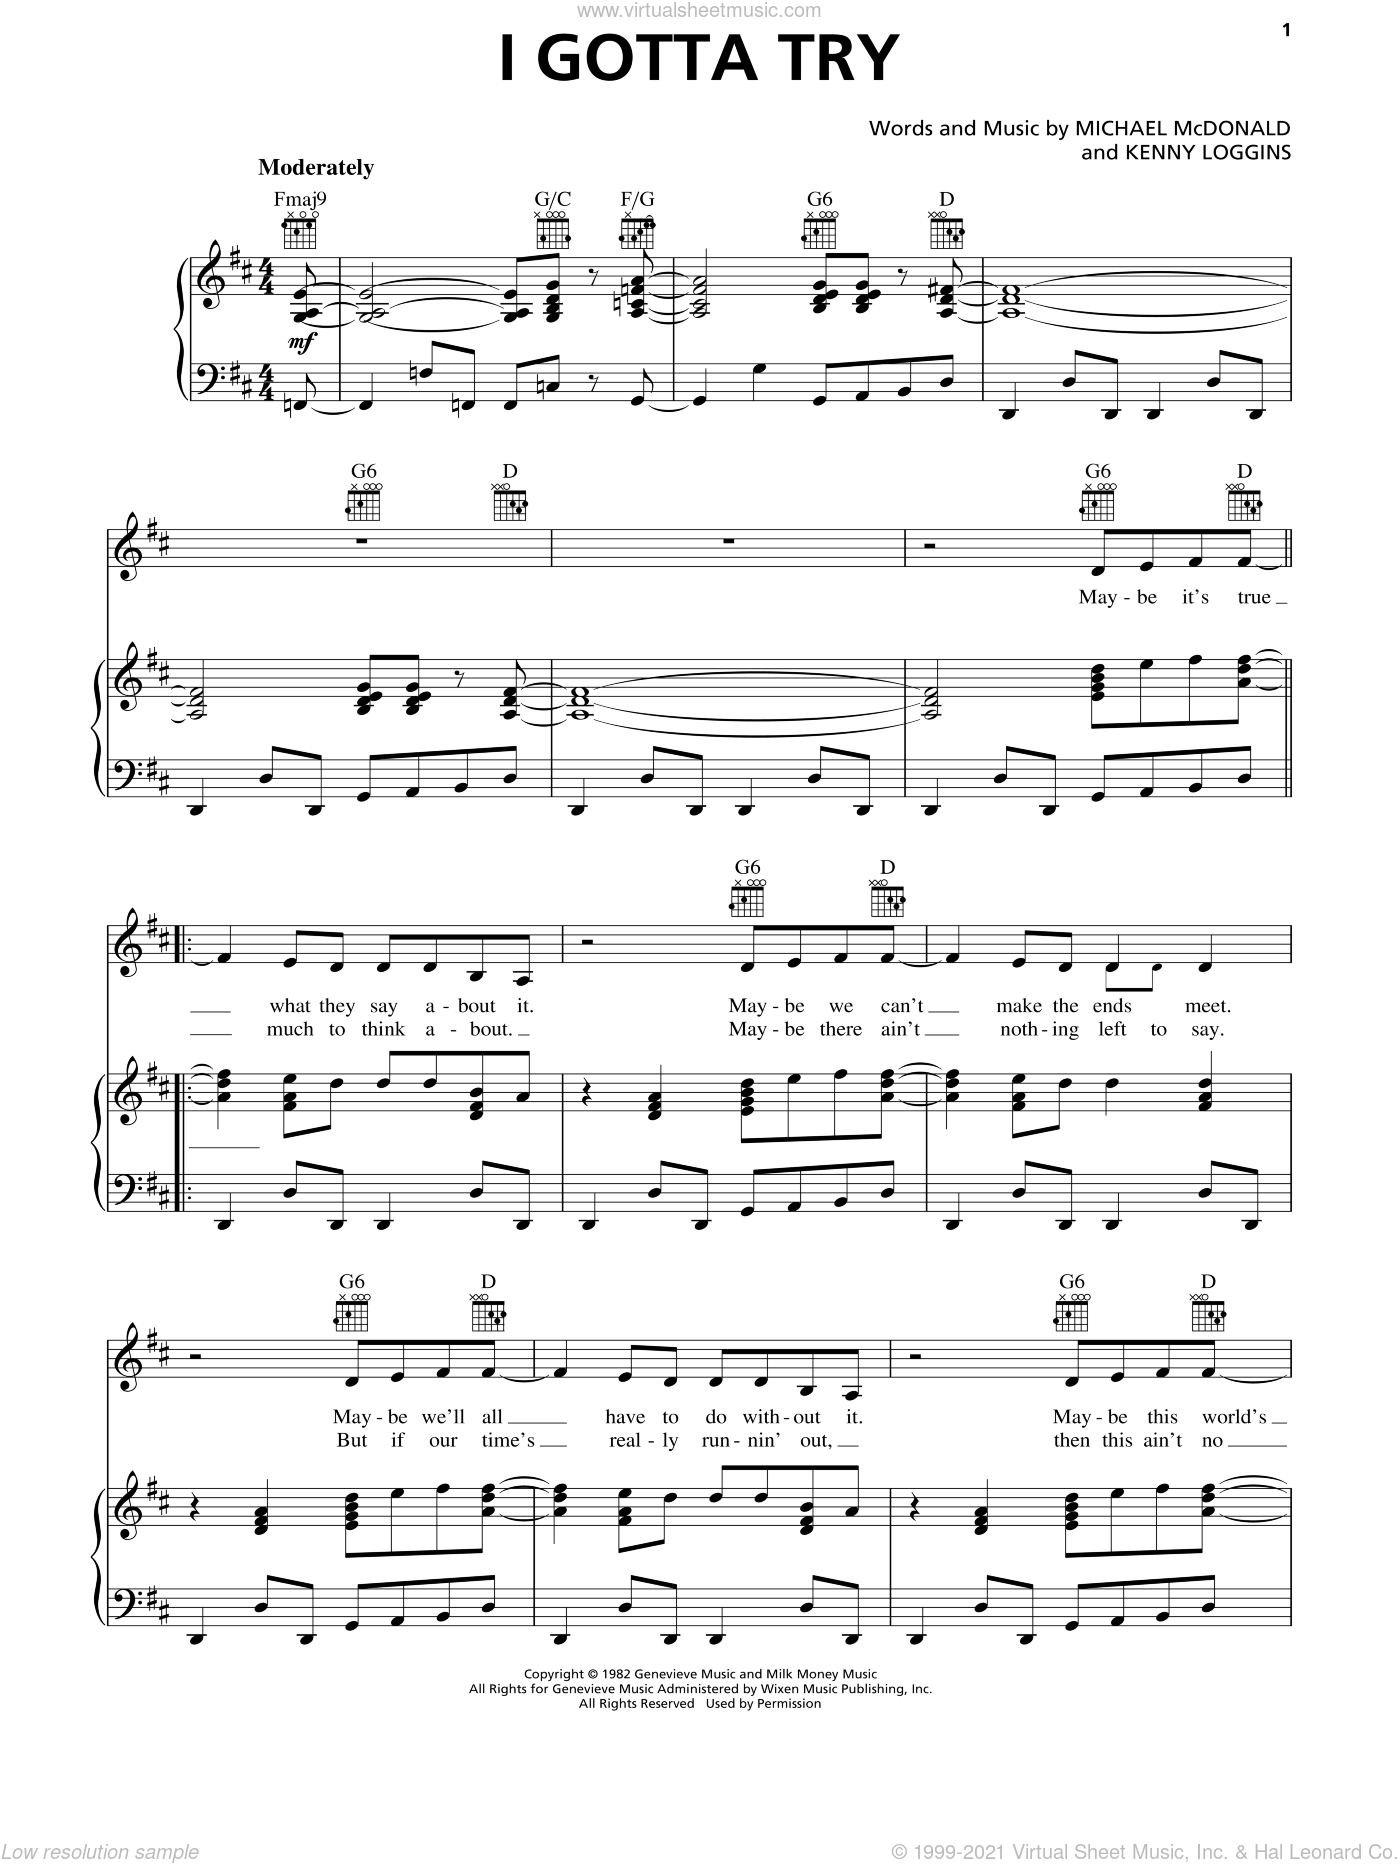 I Gotta Try sheet music for voice, piano or guitar by Michael McDonald and Kenny Loggins, intermediate. Score Image Preview.